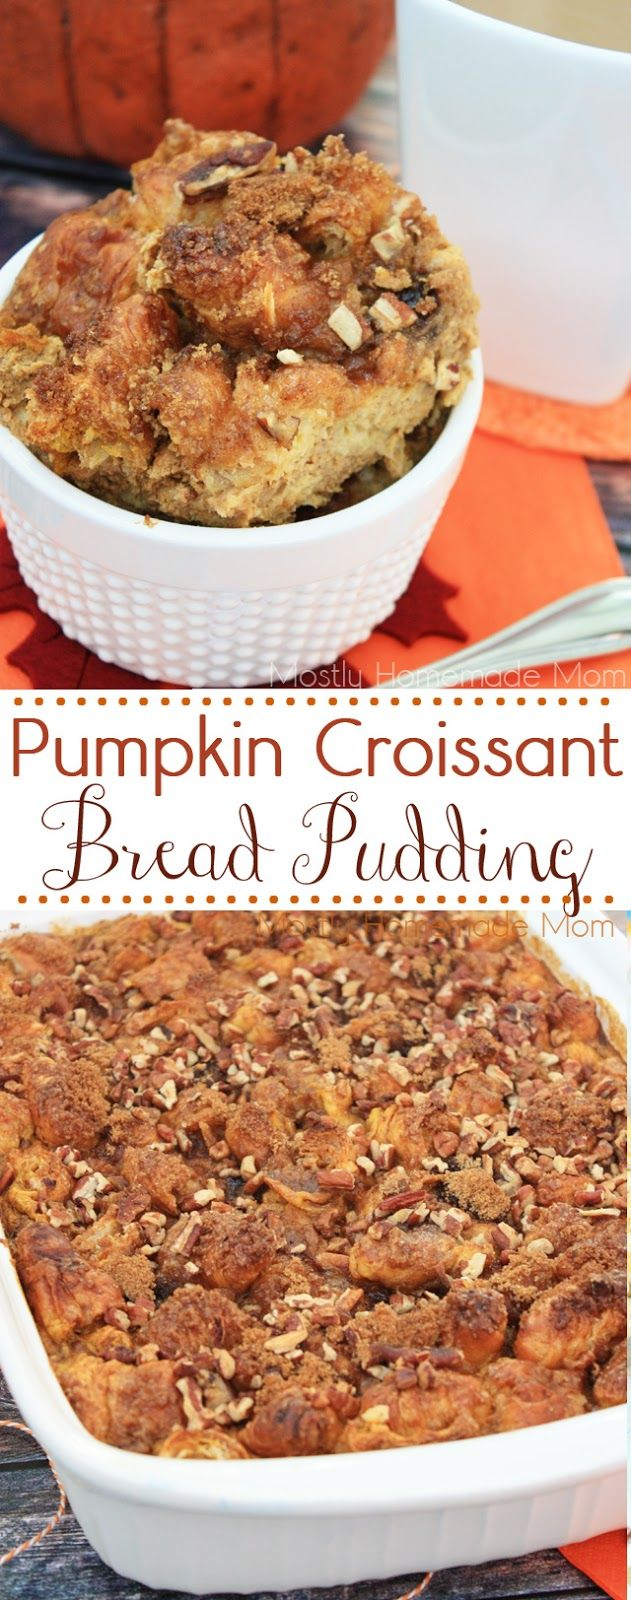 Pumpkin Croissant Bread Pudding - Perfect for brunch along with a cup of hot coffee, yum! #DelightfulMoments #ad